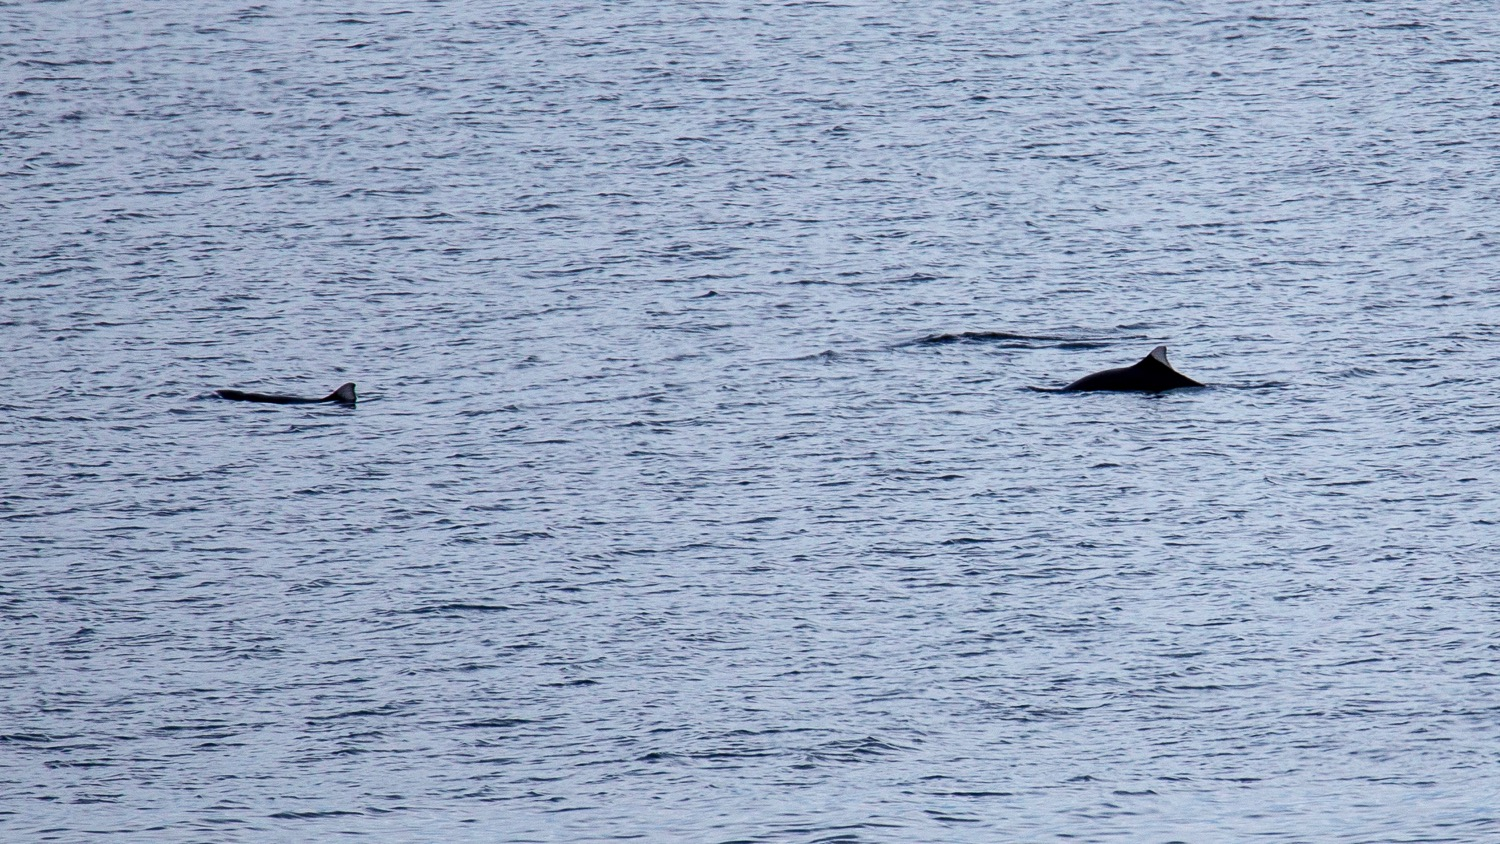 We saw porpoises quite a few times throughout the day.